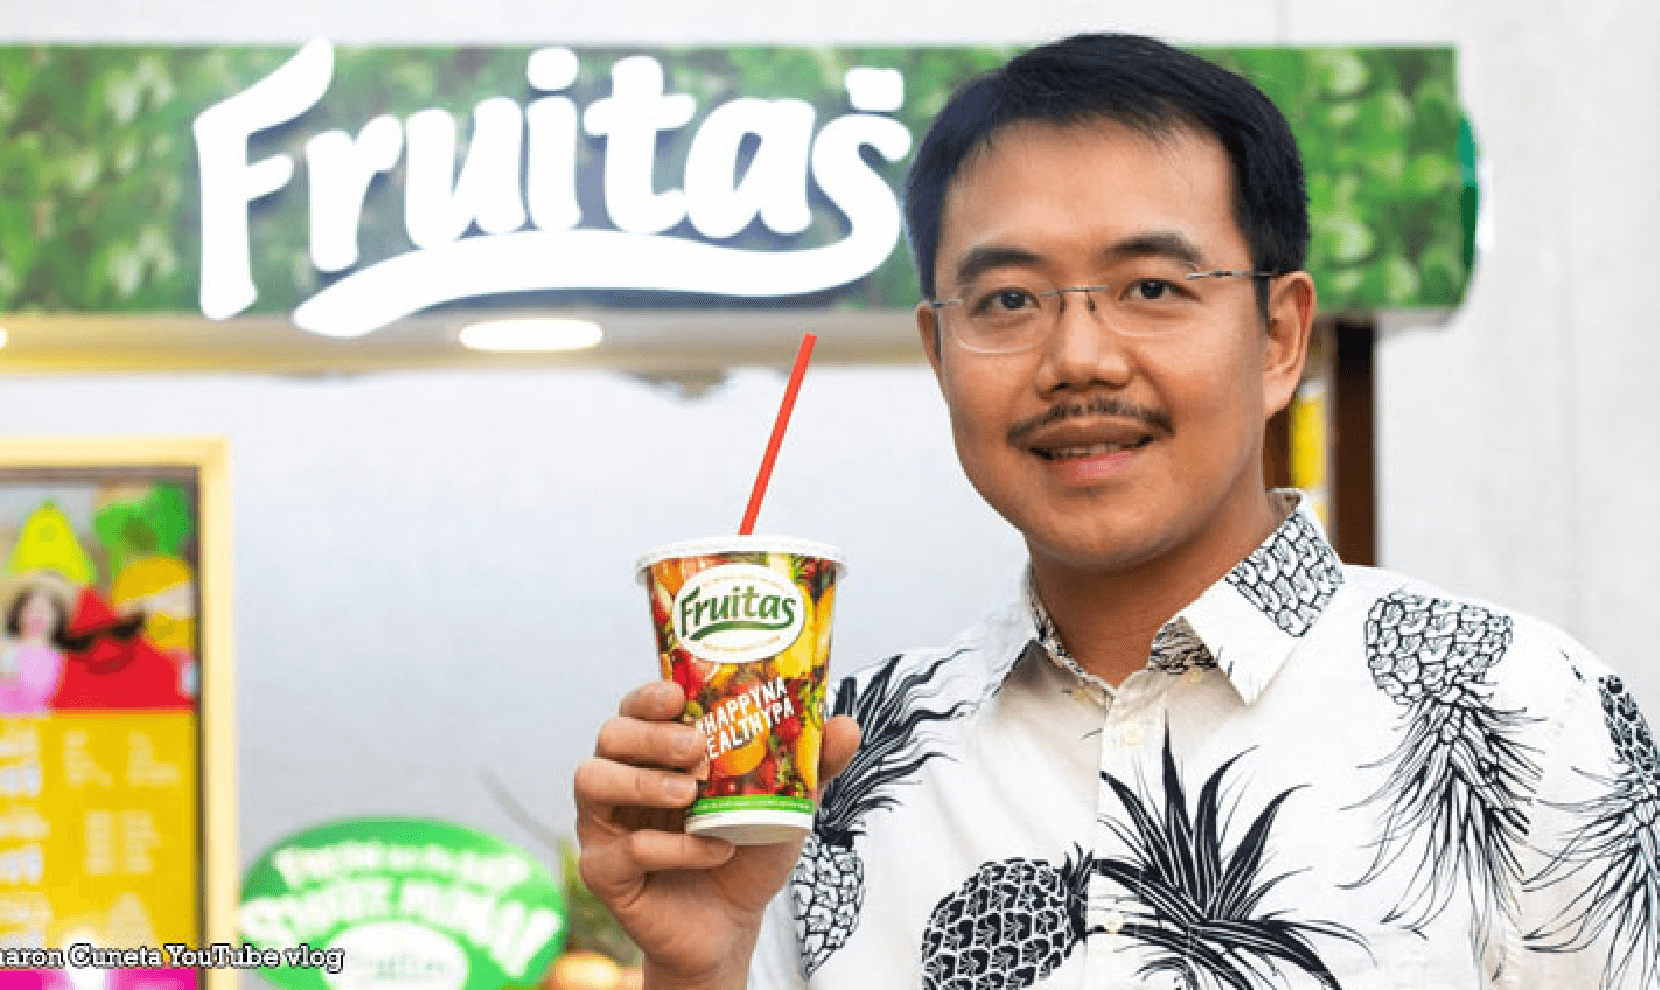 lester-yu-of-fruitas-the-king-of-fresh-juice-stands-in-philippines